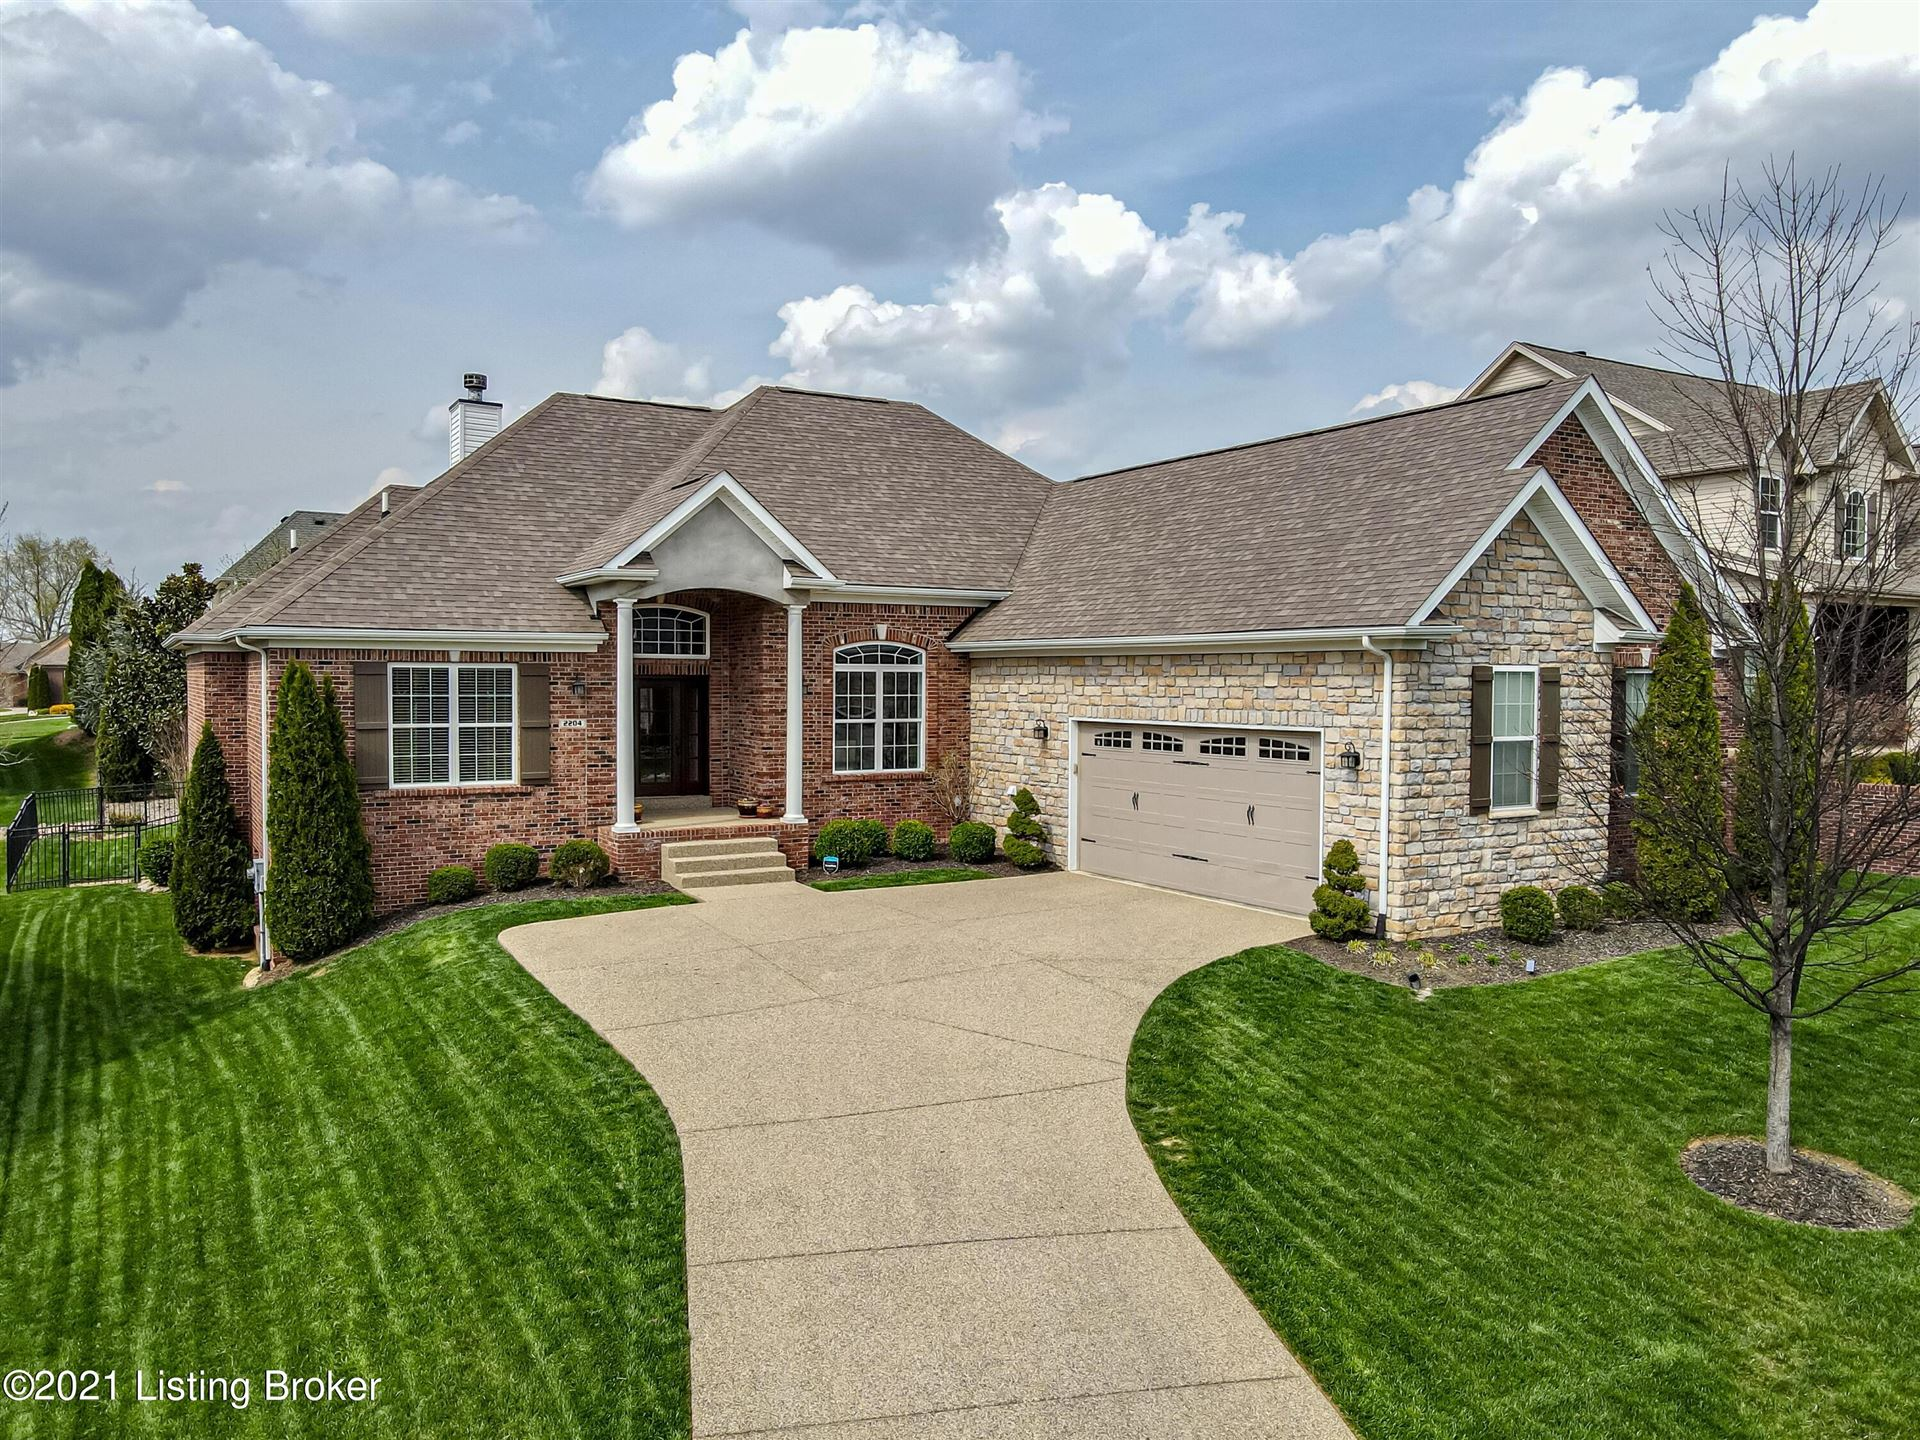 Photo for 2204 Claymore Cir, Louisville, KY 40245 (MLS # 1582704)